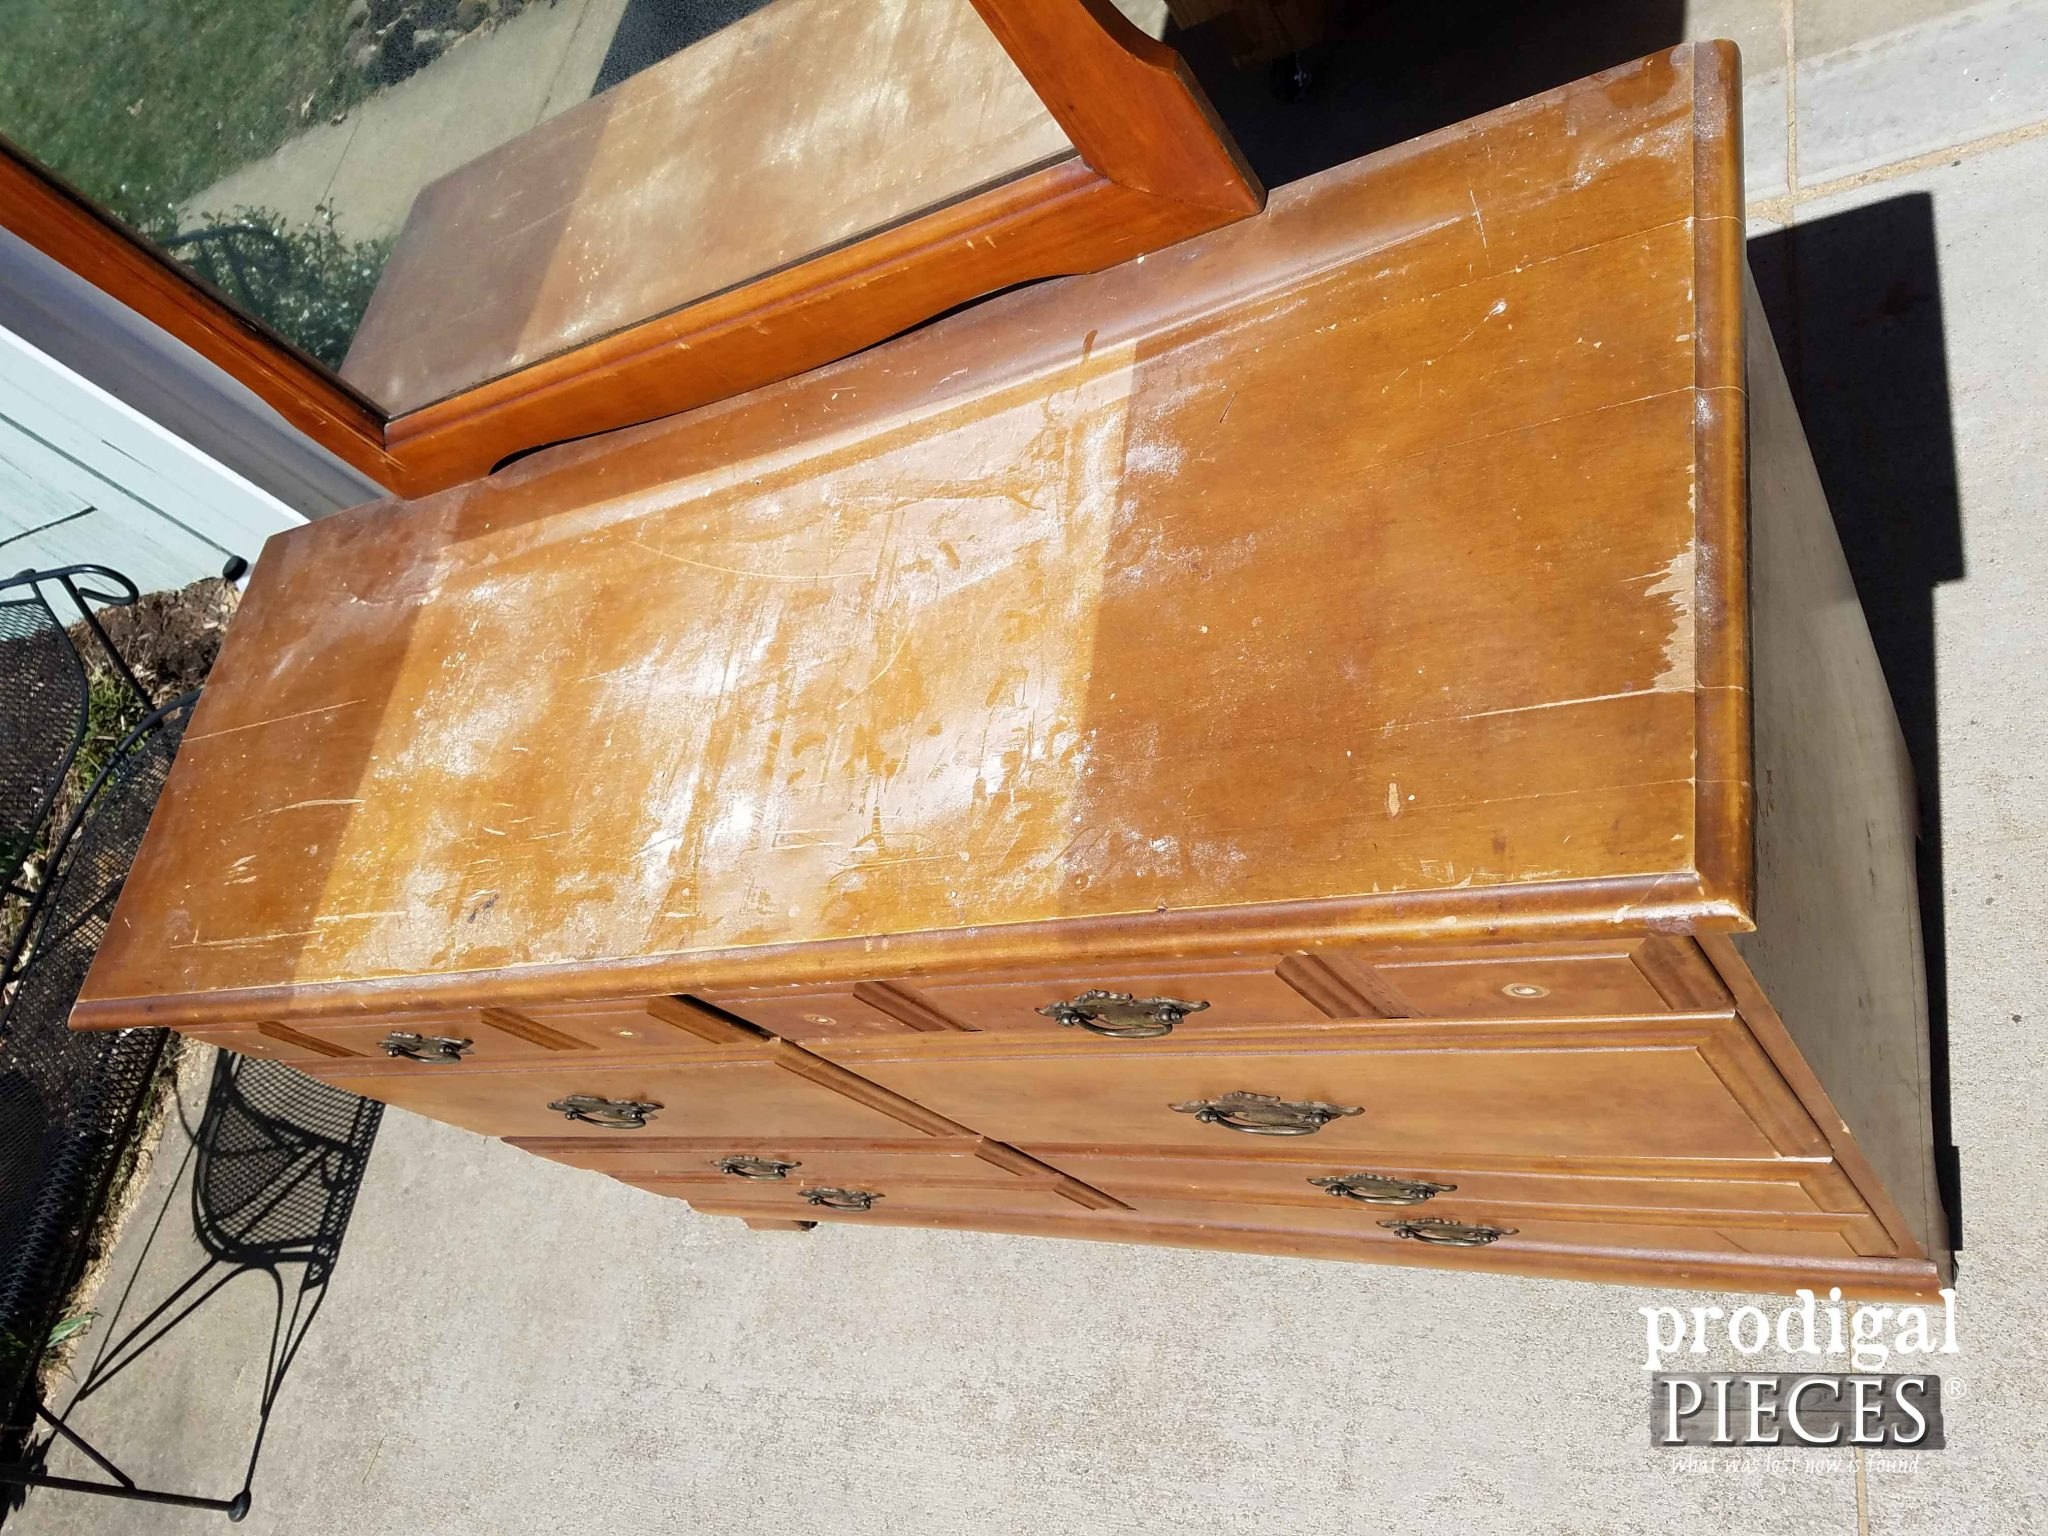 Damaged Dresser Top | Prodigal Pieces | prodigalpieces.com